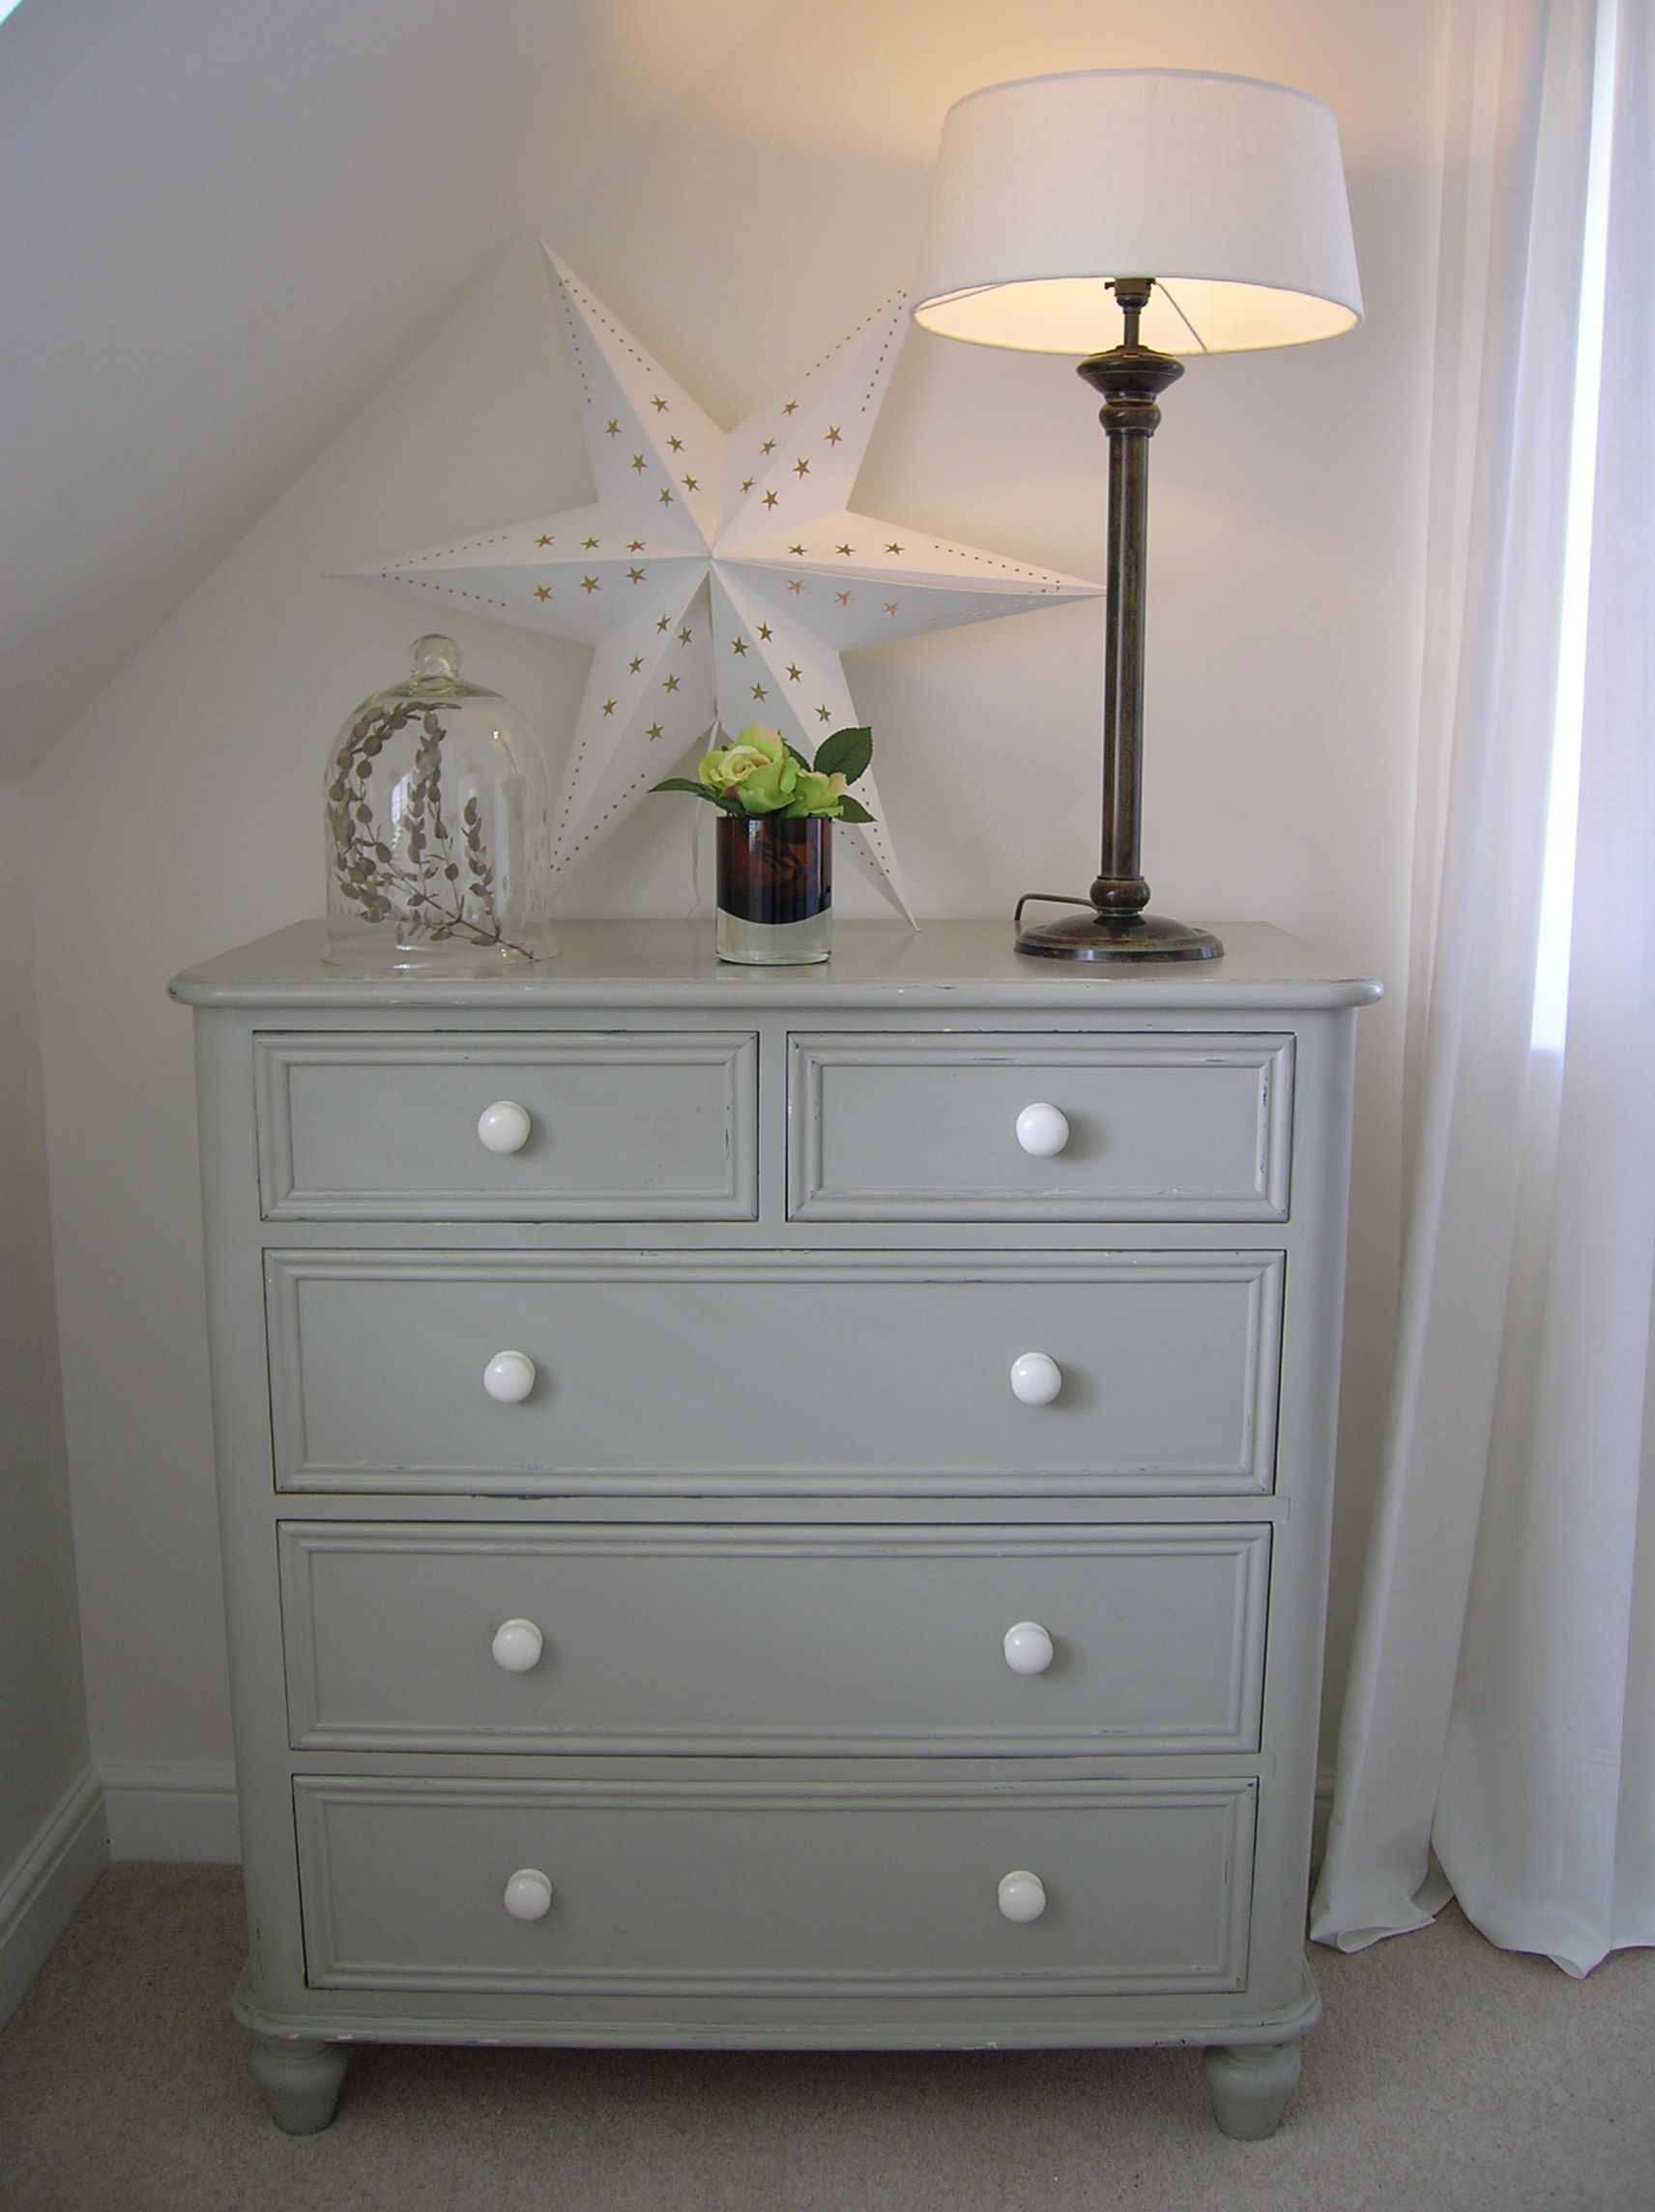 Old Chest Of Drawers Painted In Farrow Ball Hardwick White Bedroom Ideas Pinterest